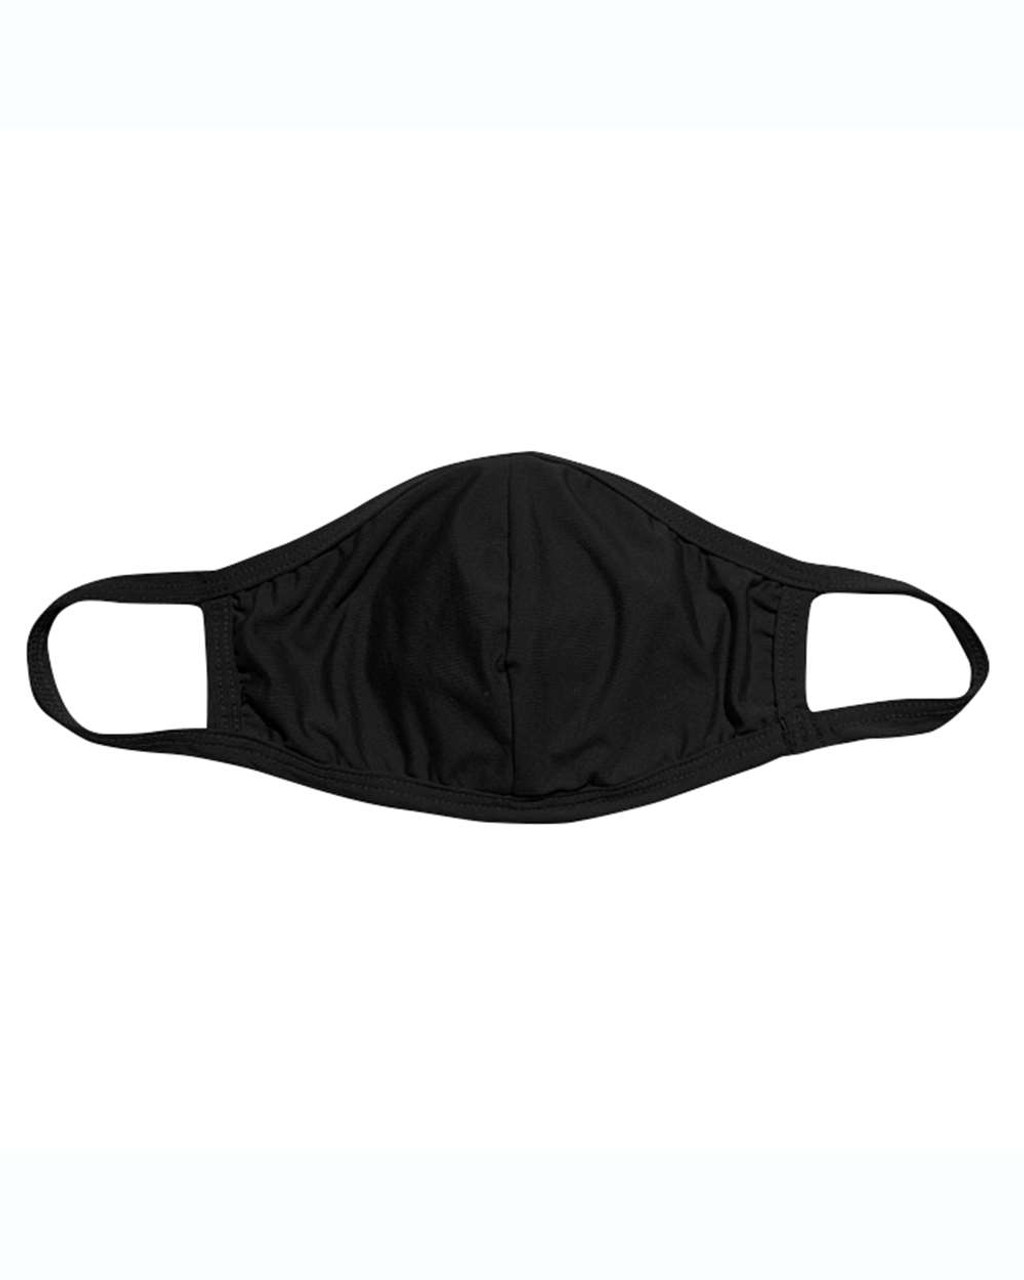 2-ply Spandex Face Mask